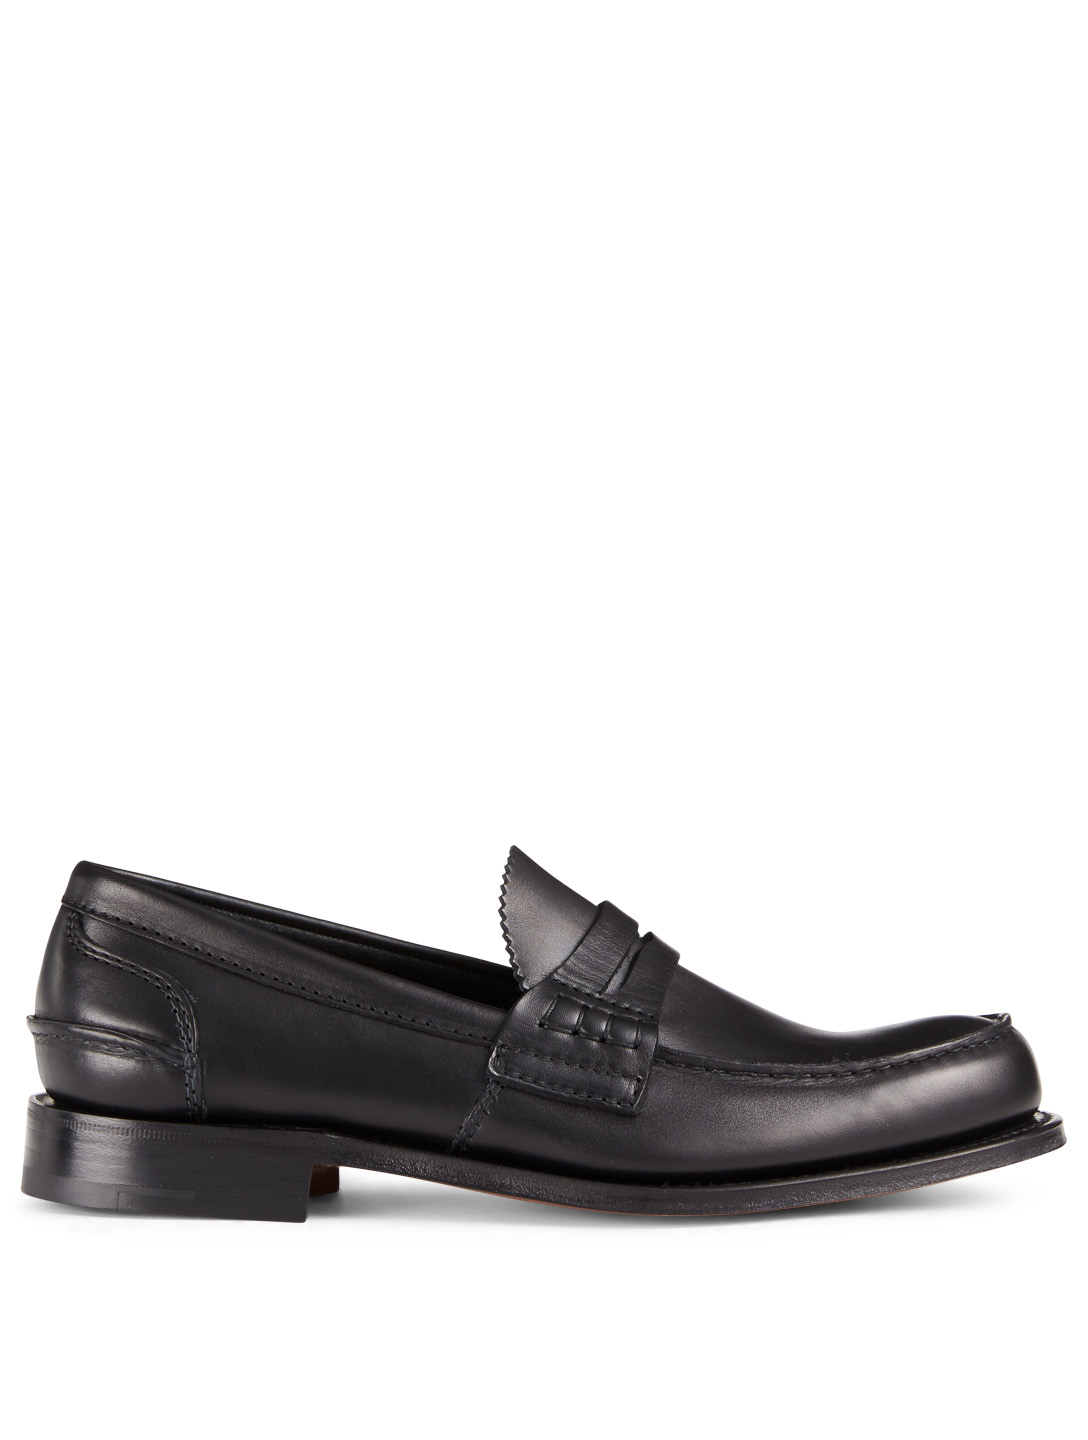 CHURCH'S Pembrey Leather Loafers Men's Black